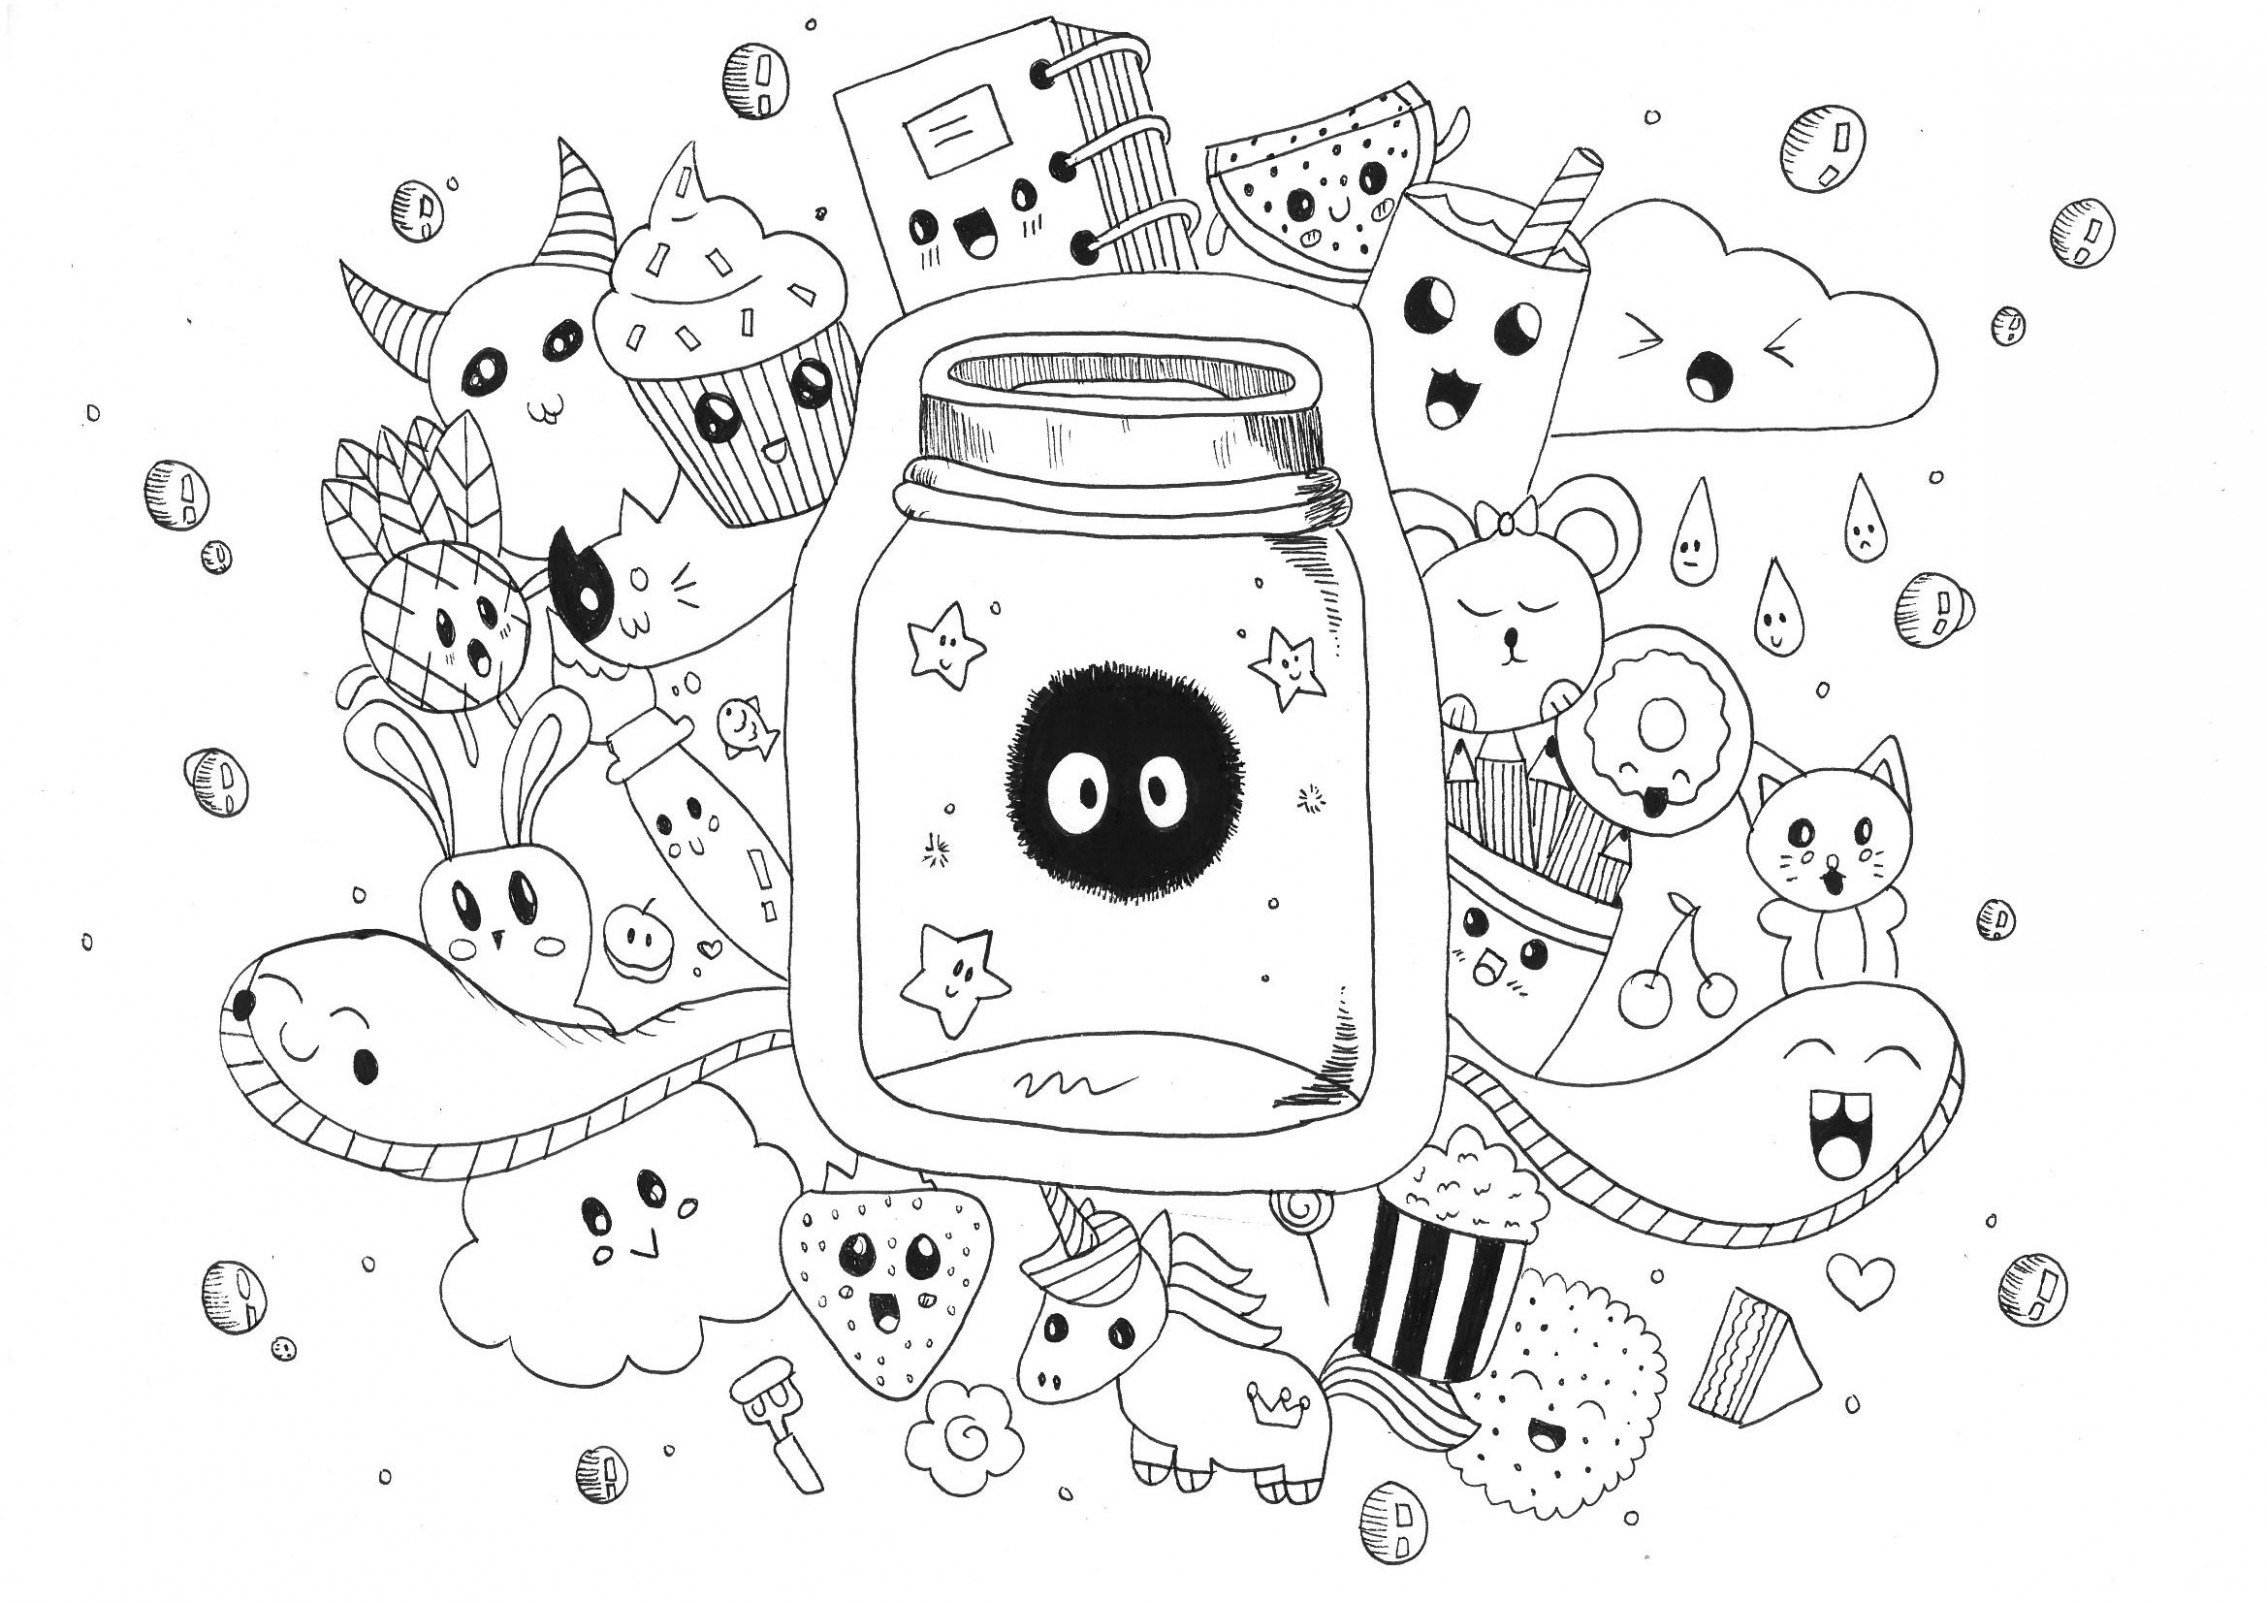 Kawaii doodle rachel - Doodle Art / Doodling Adult Coloring Pages